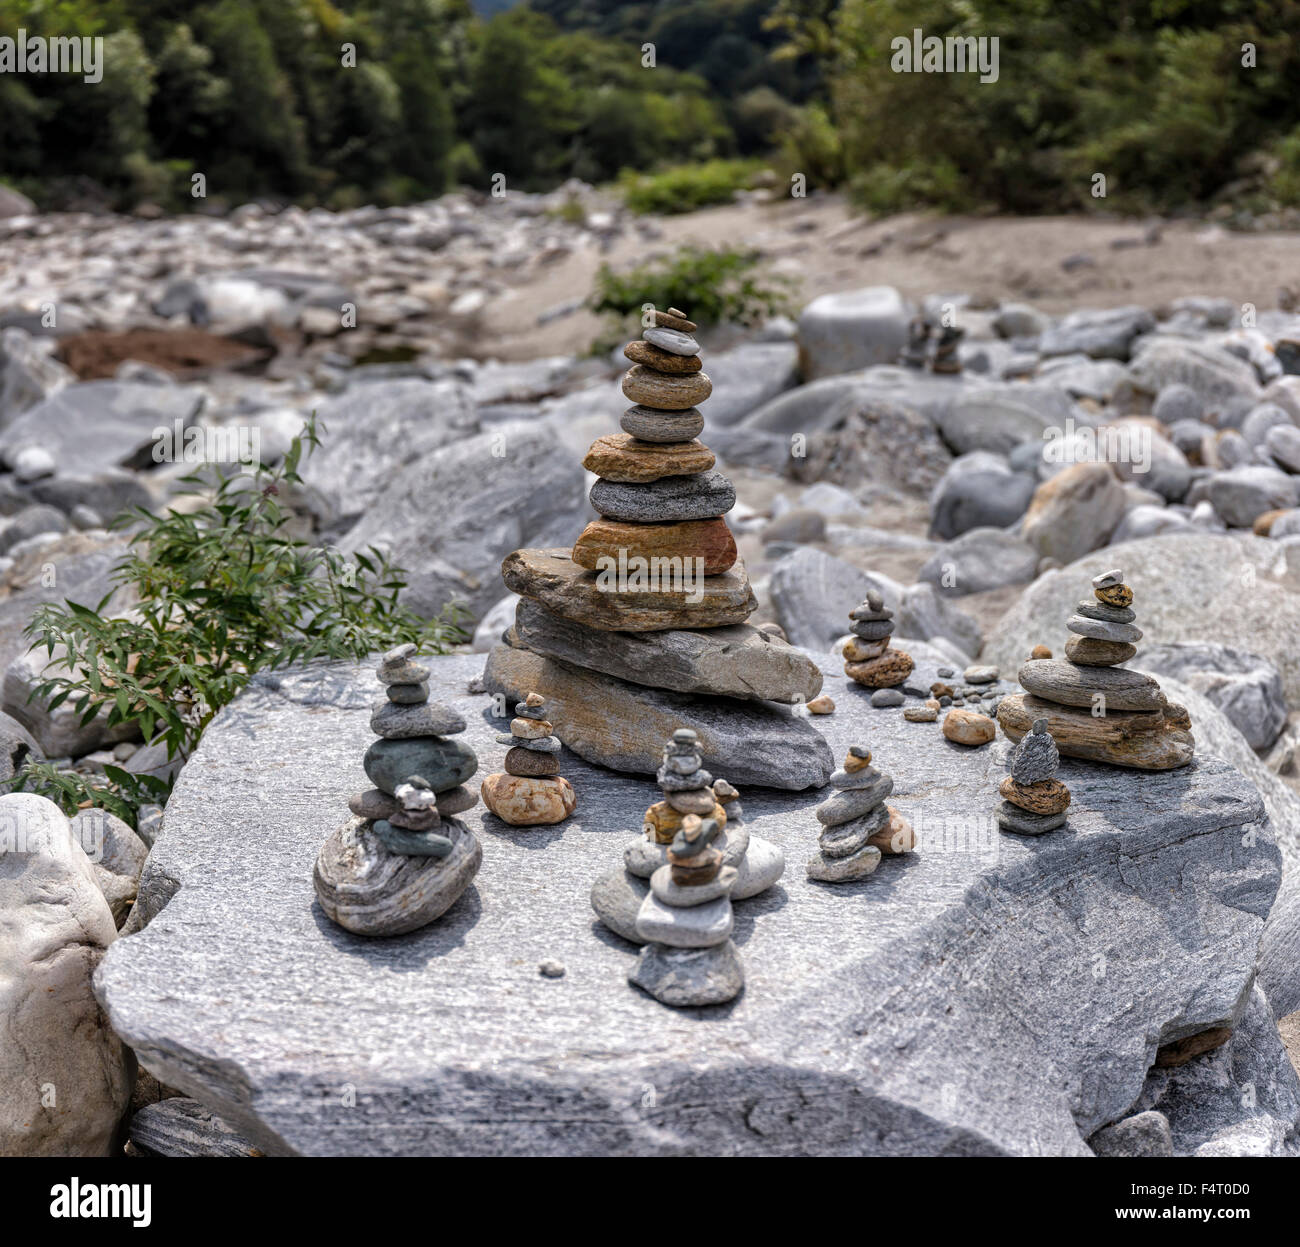 Switzerland, Europe, Tegna, Ticino, Pebble towers, cairn, maggia valley, landscape, water, summer, - Stock Image